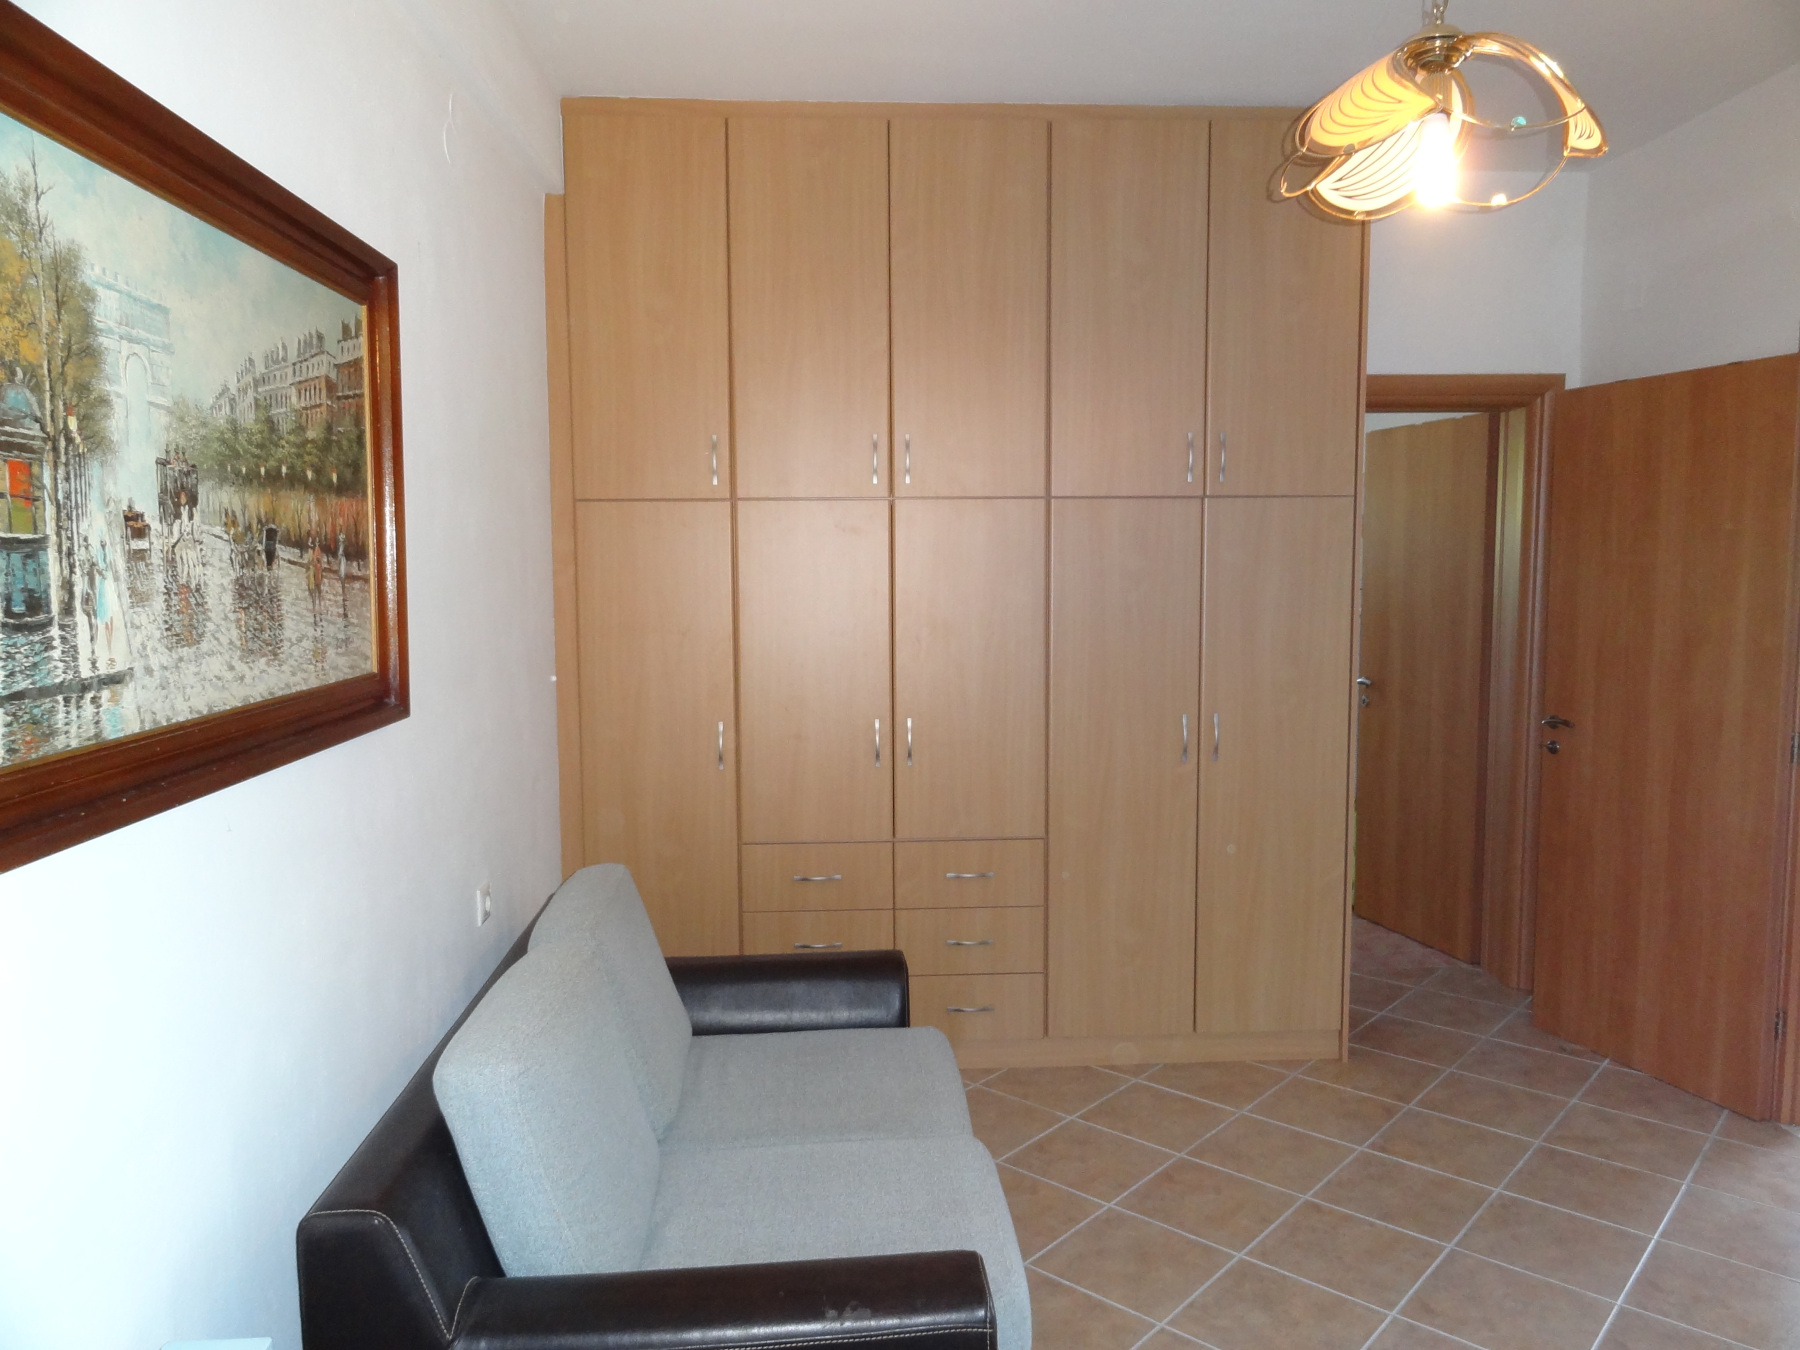 For rent fully furnished ground floor 1 bedroom apartment of 45 sq.m. in Neochoropoulo near the University of Ioannina